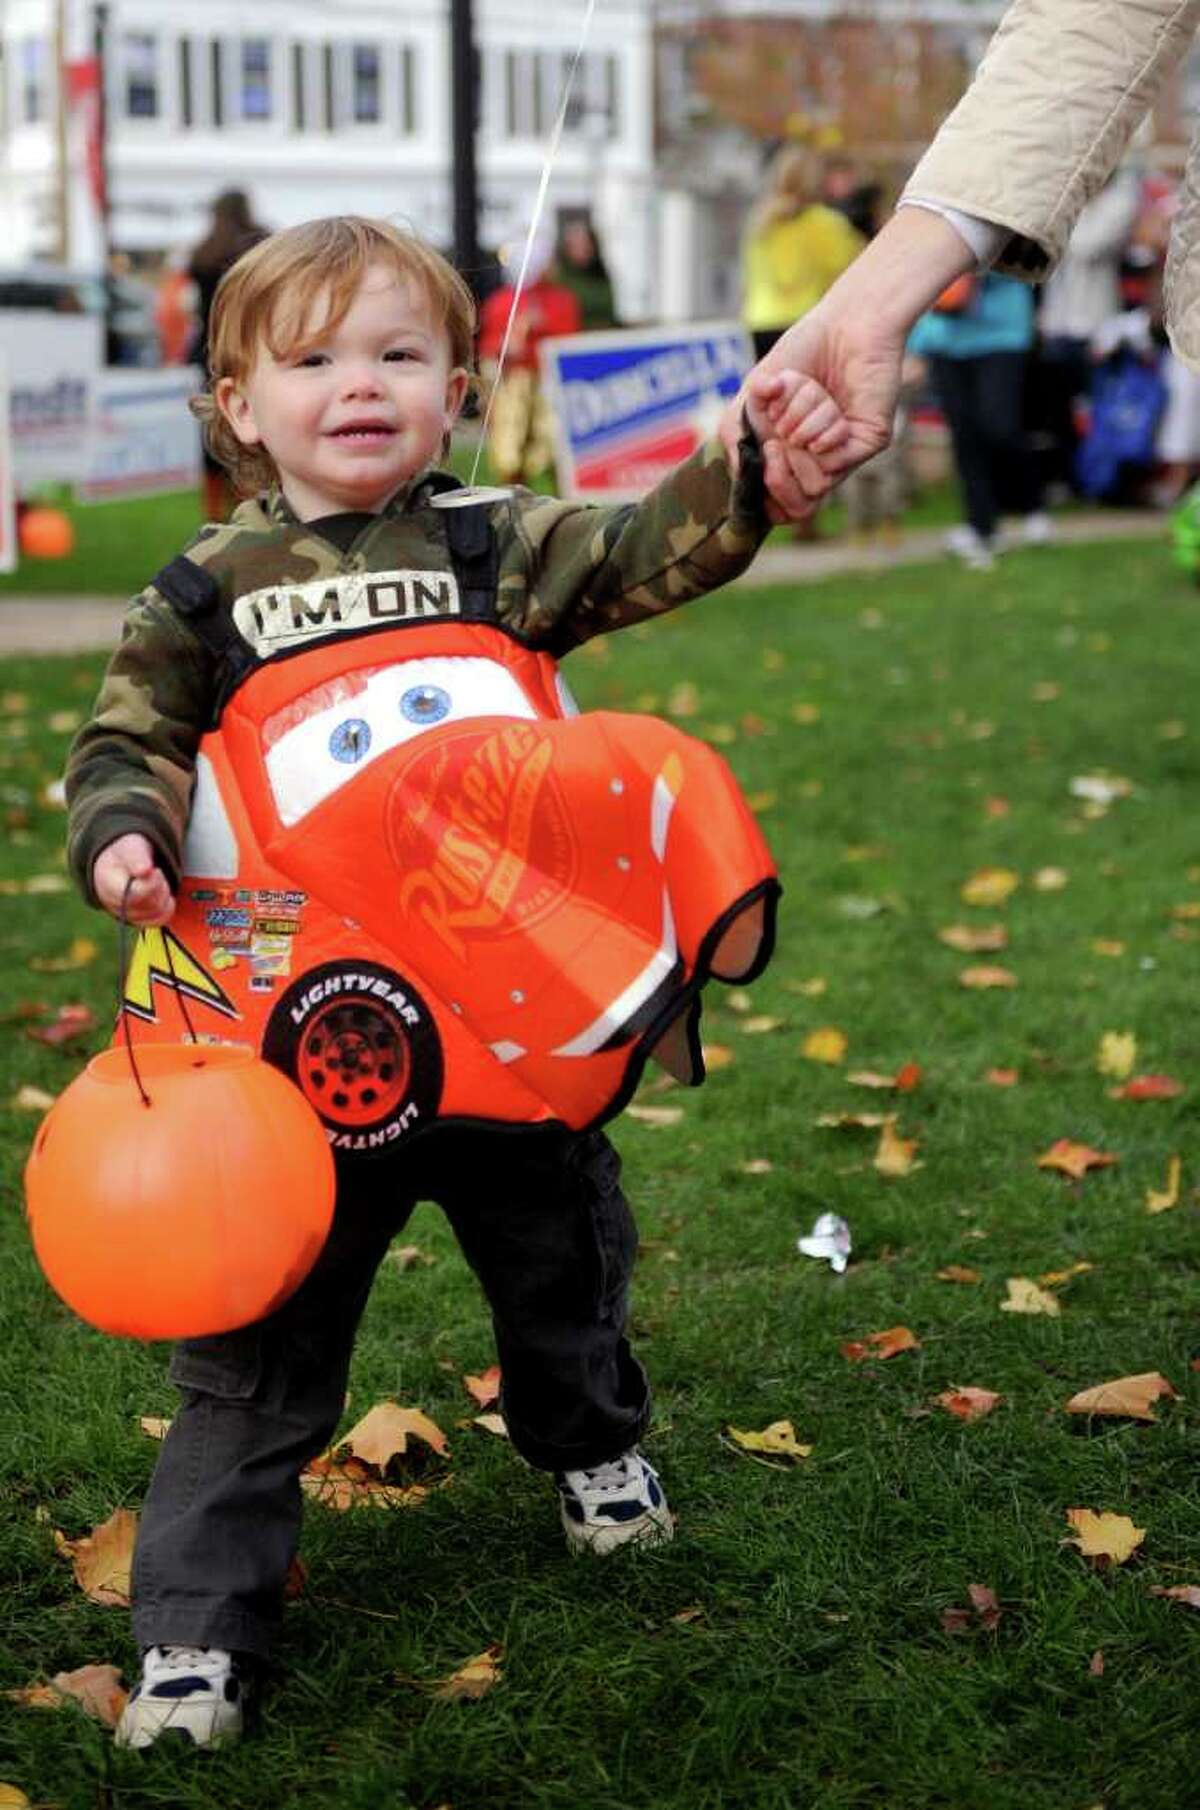 Barrett Mullahy, 2, walks with his mother during the Trick or Treat on Safety Street event in Fairfield on Friday, October 29, 2010.